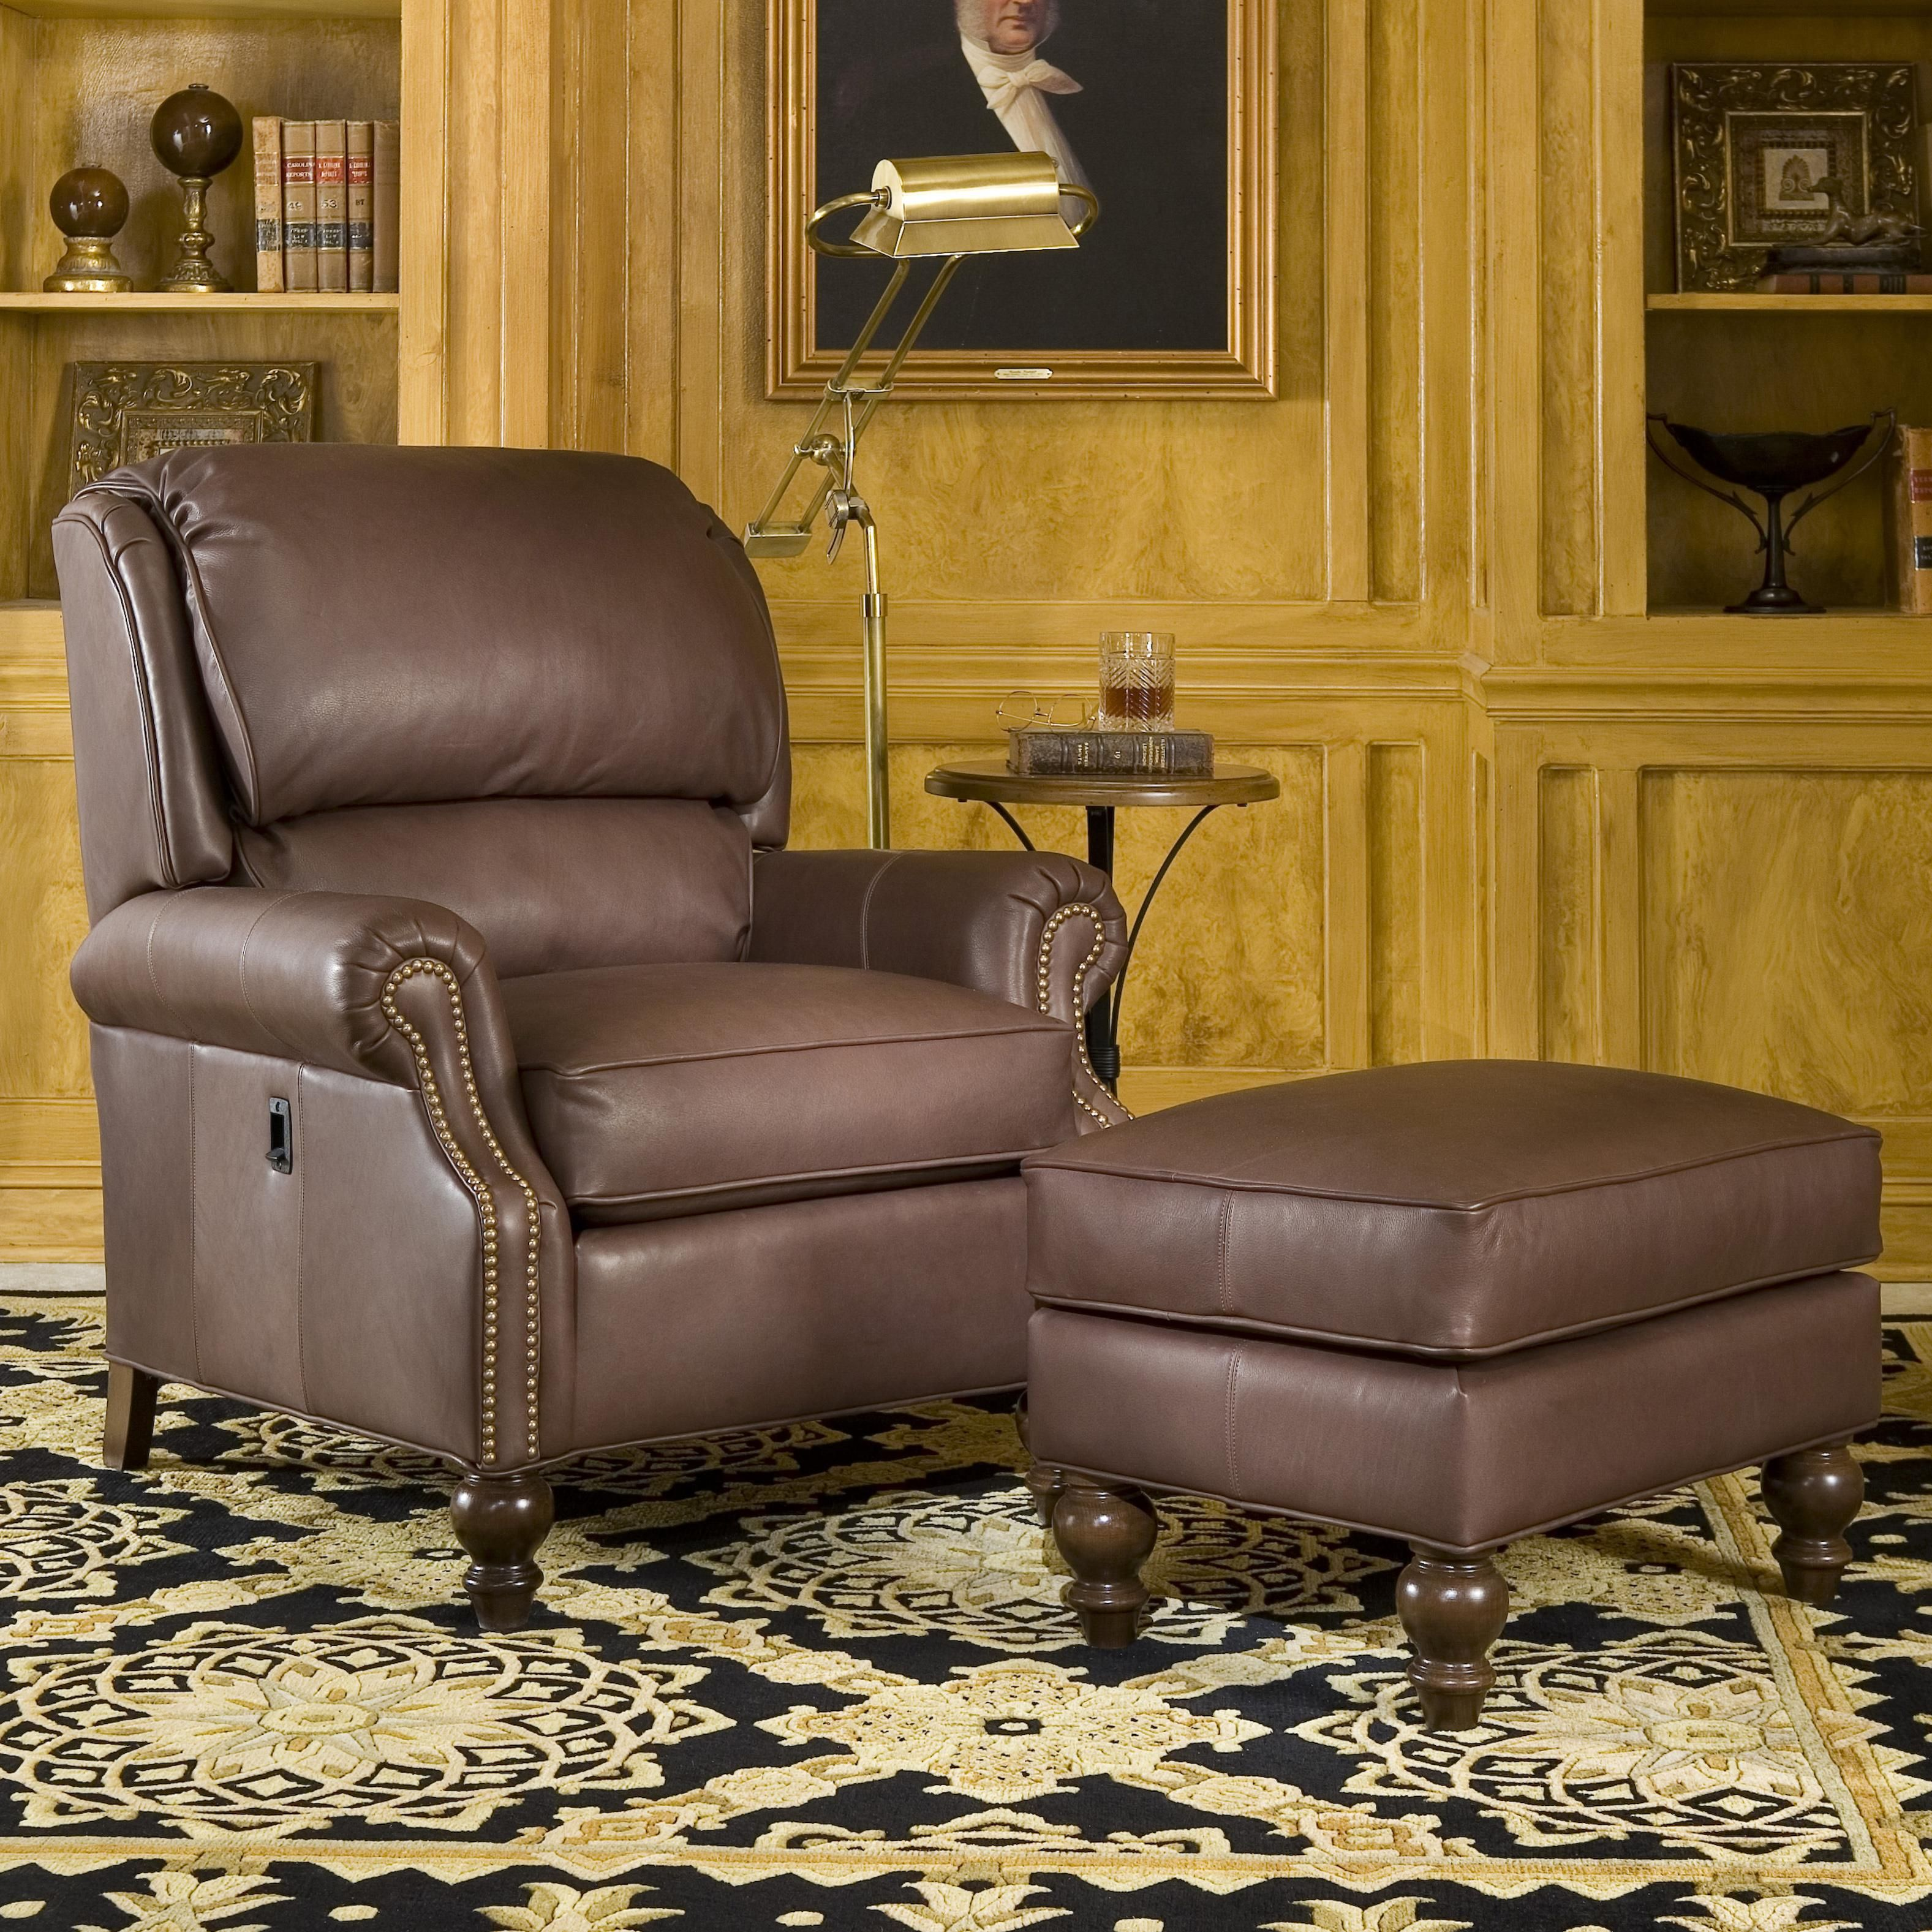 Tilt Back Chair Smith Brothers 950 Tilt Back Chair And Ottoman Combination At